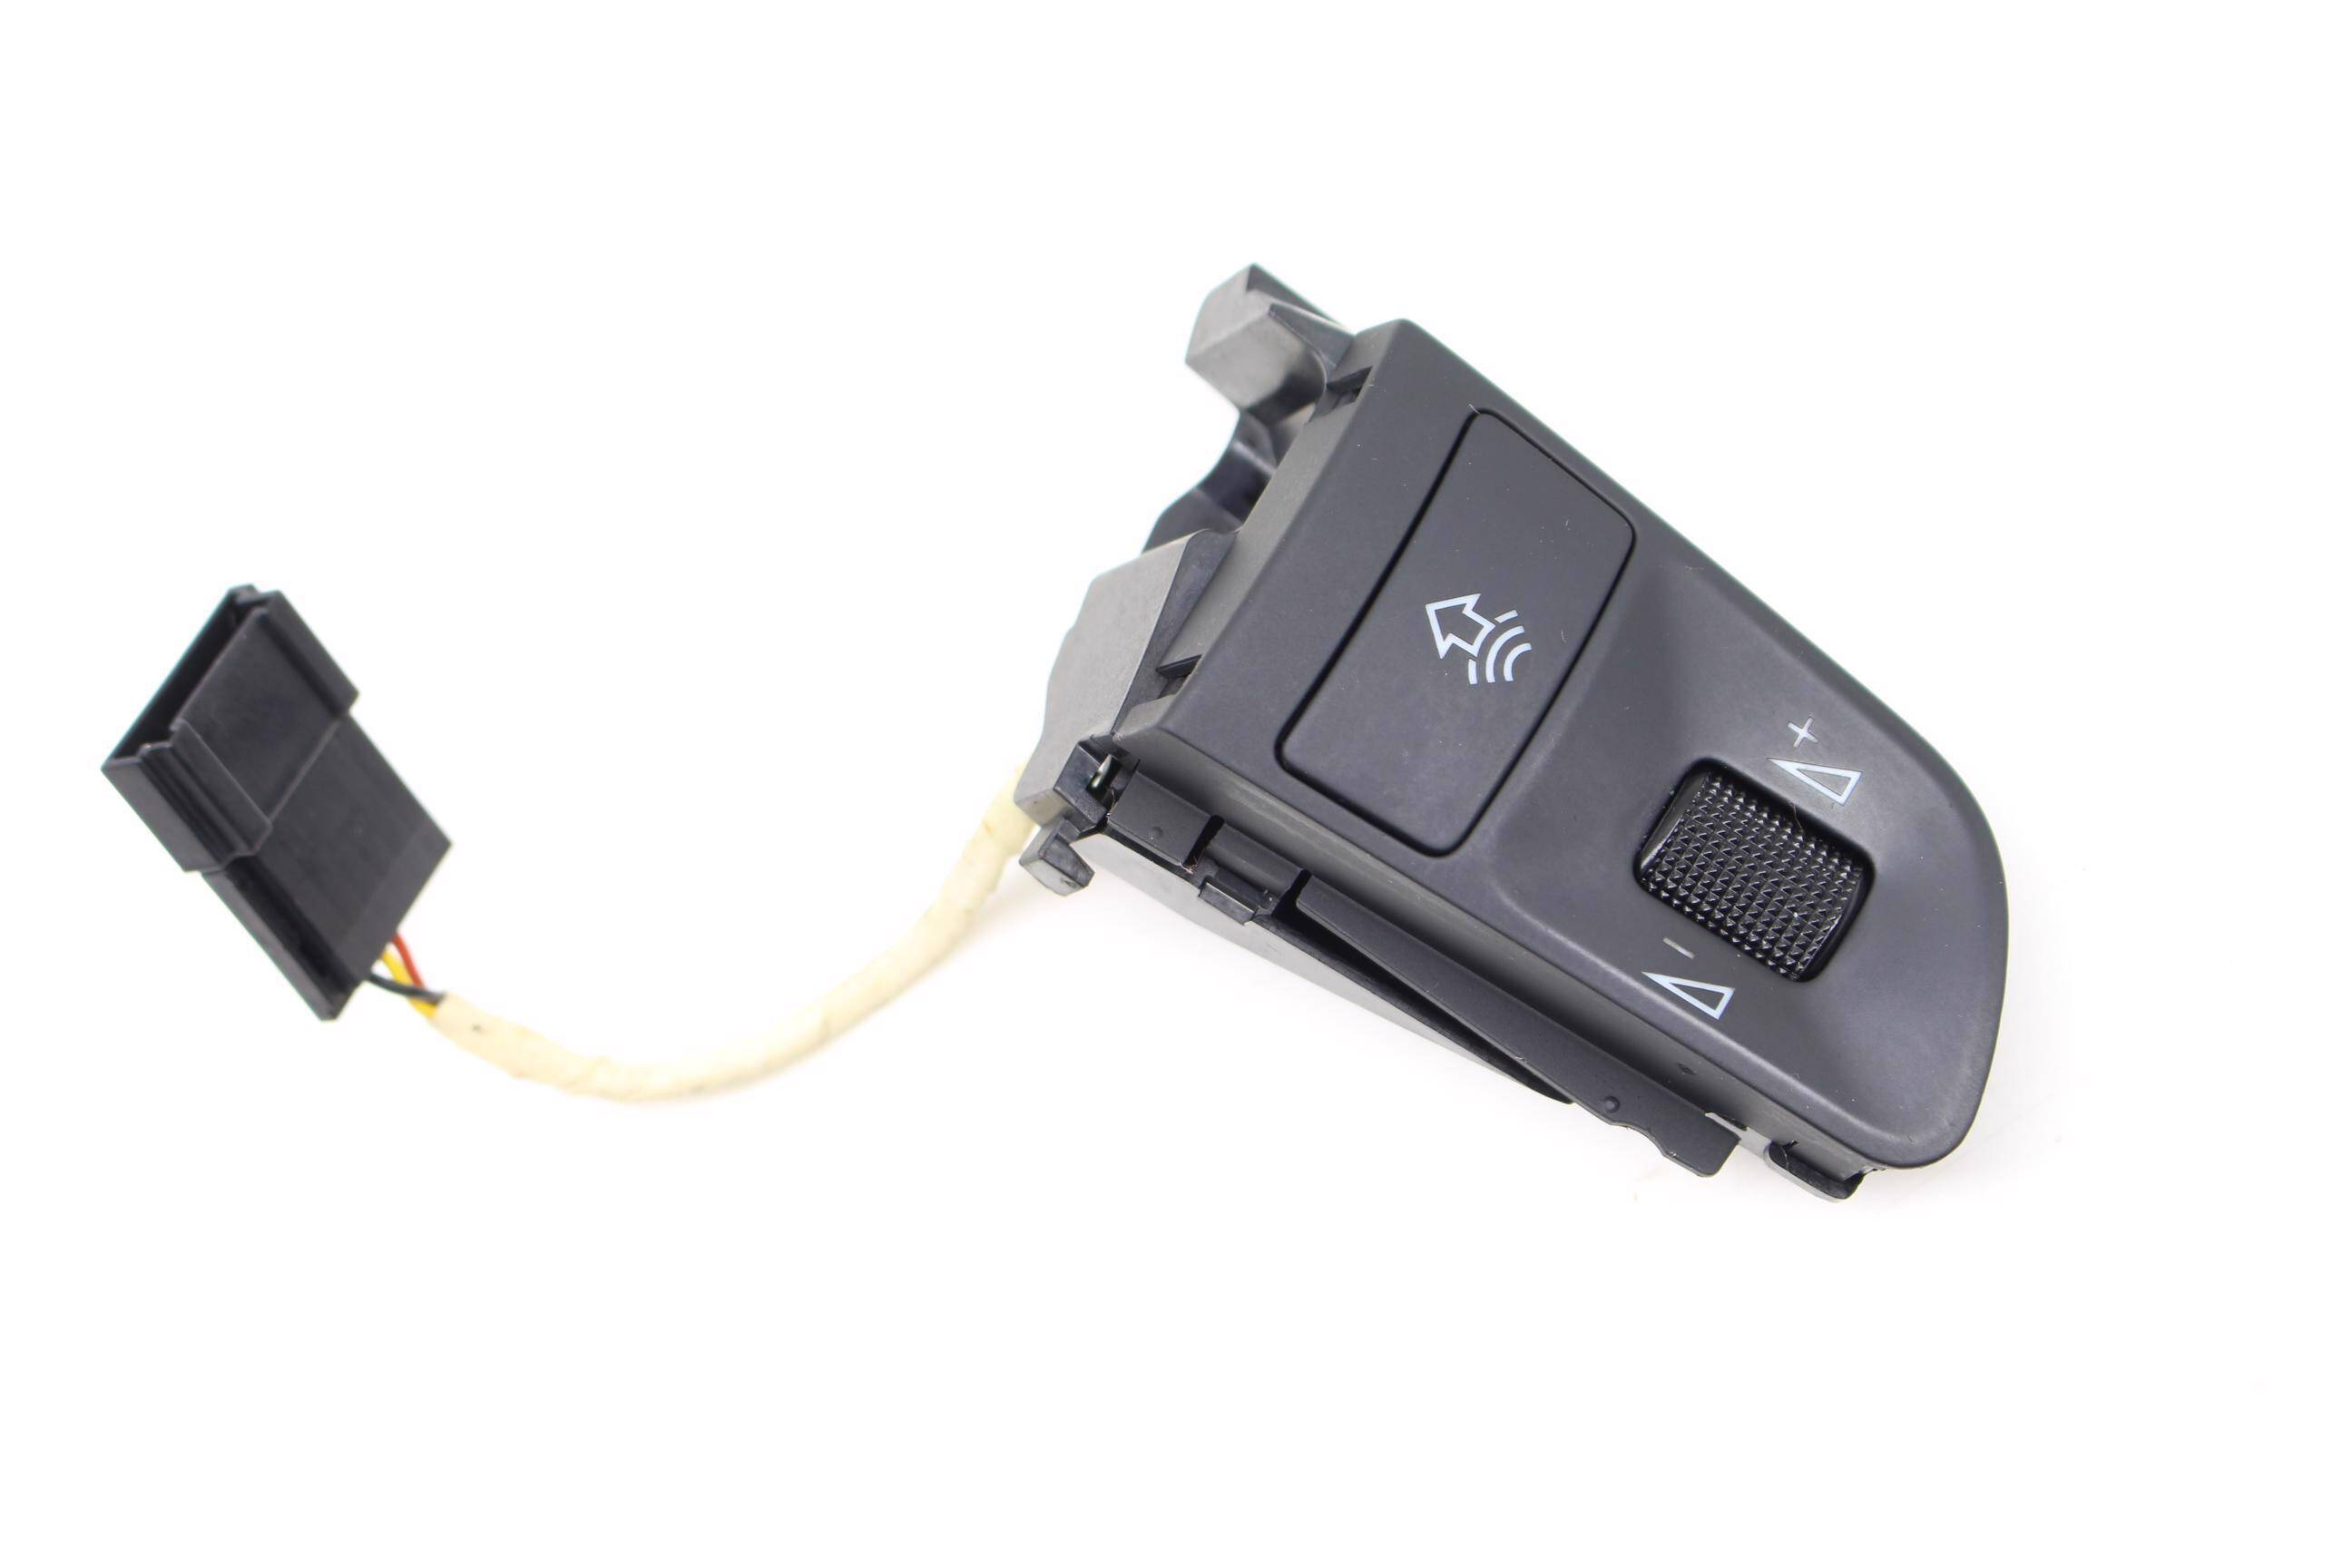 05 06 07 08 09 10 11 audi a6 c6 right steering wheel control